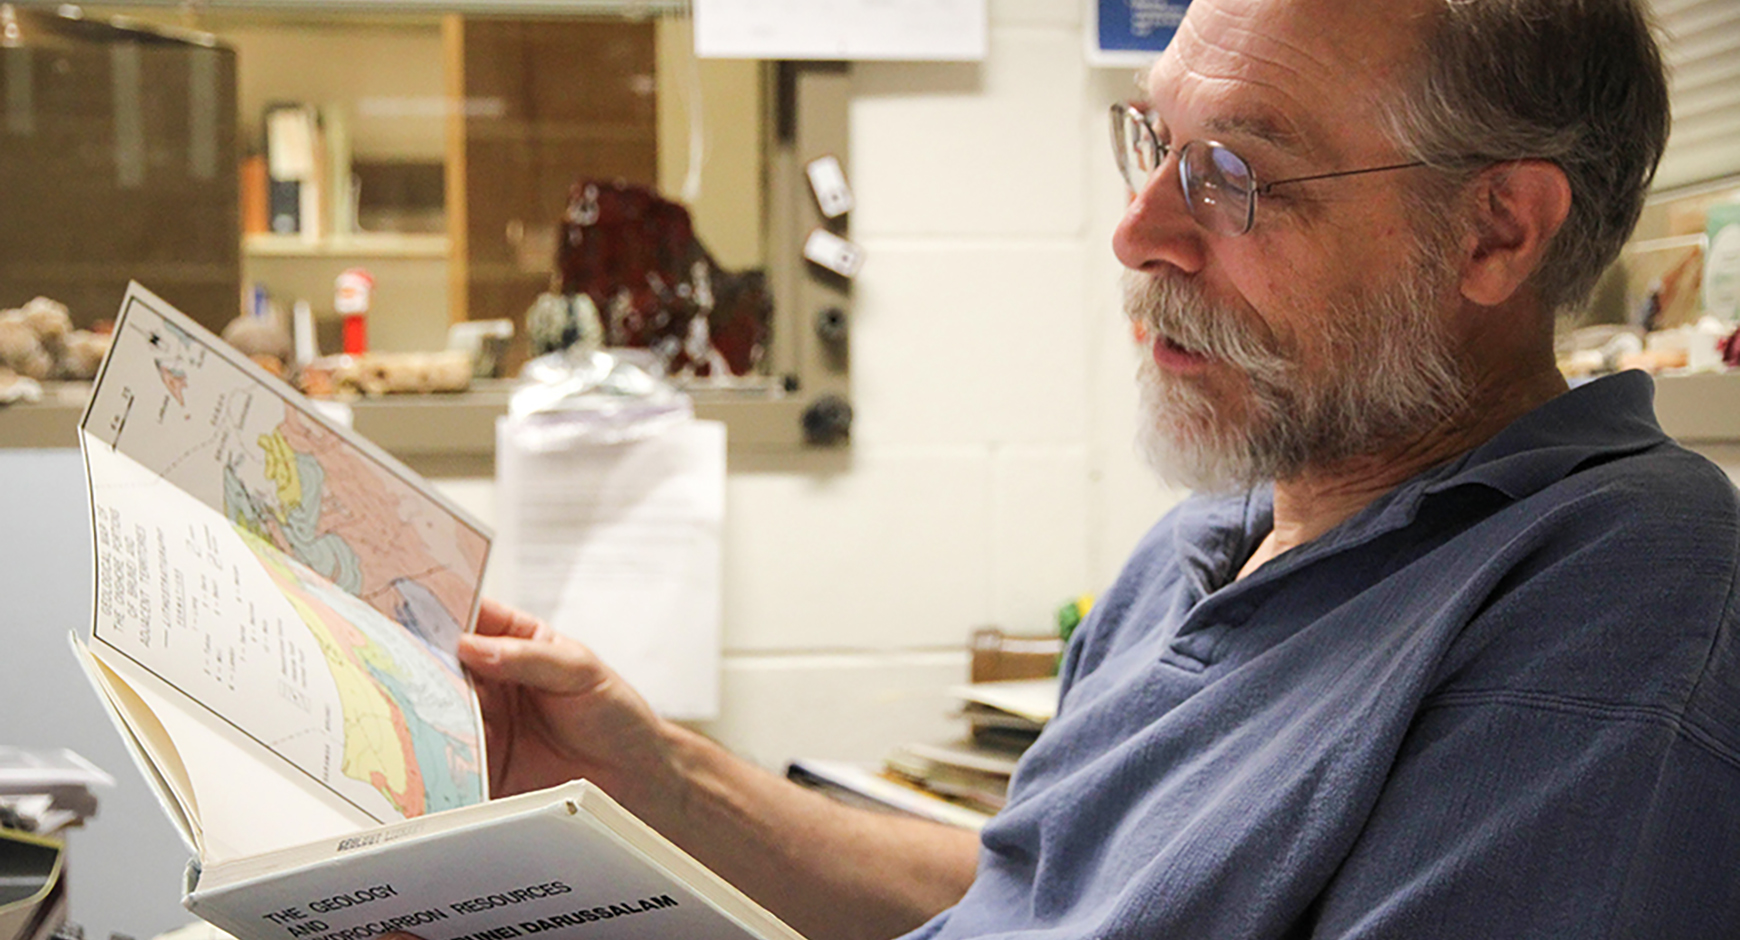 man in beard and blue polo sitting at desk reading book in profile